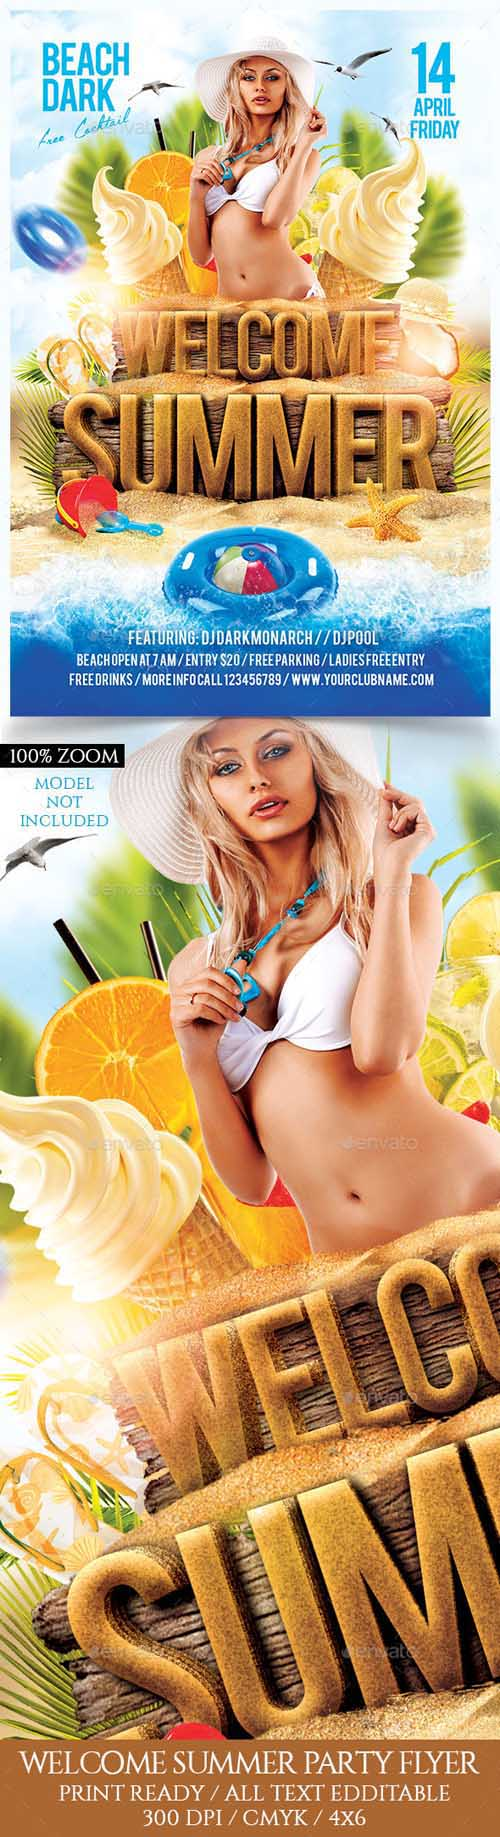 Welcome Summer Party Flyer Template – 16435421